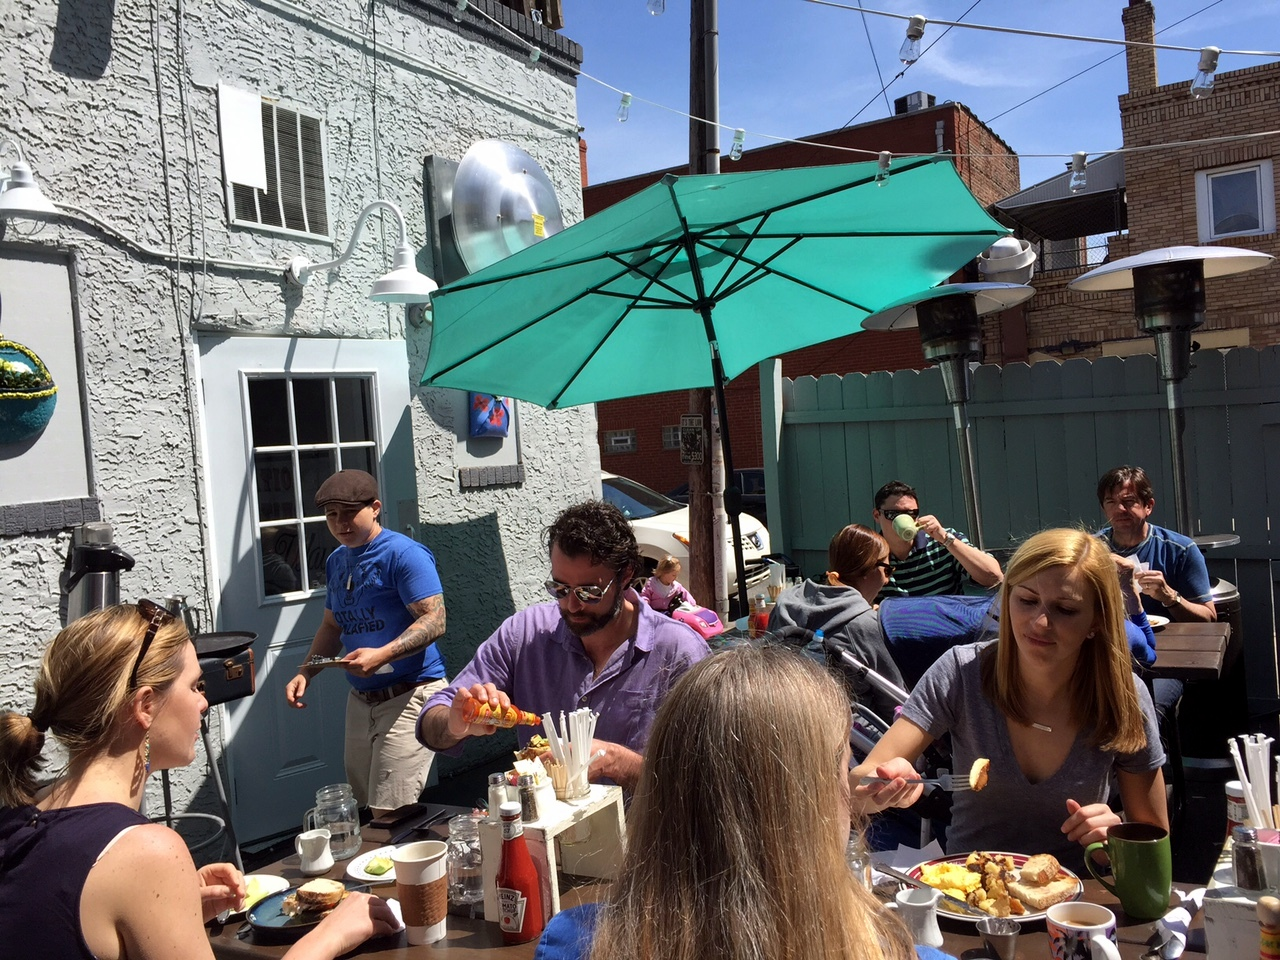 22nd philly where to brunch in graduate hospital for Little spoon cafe